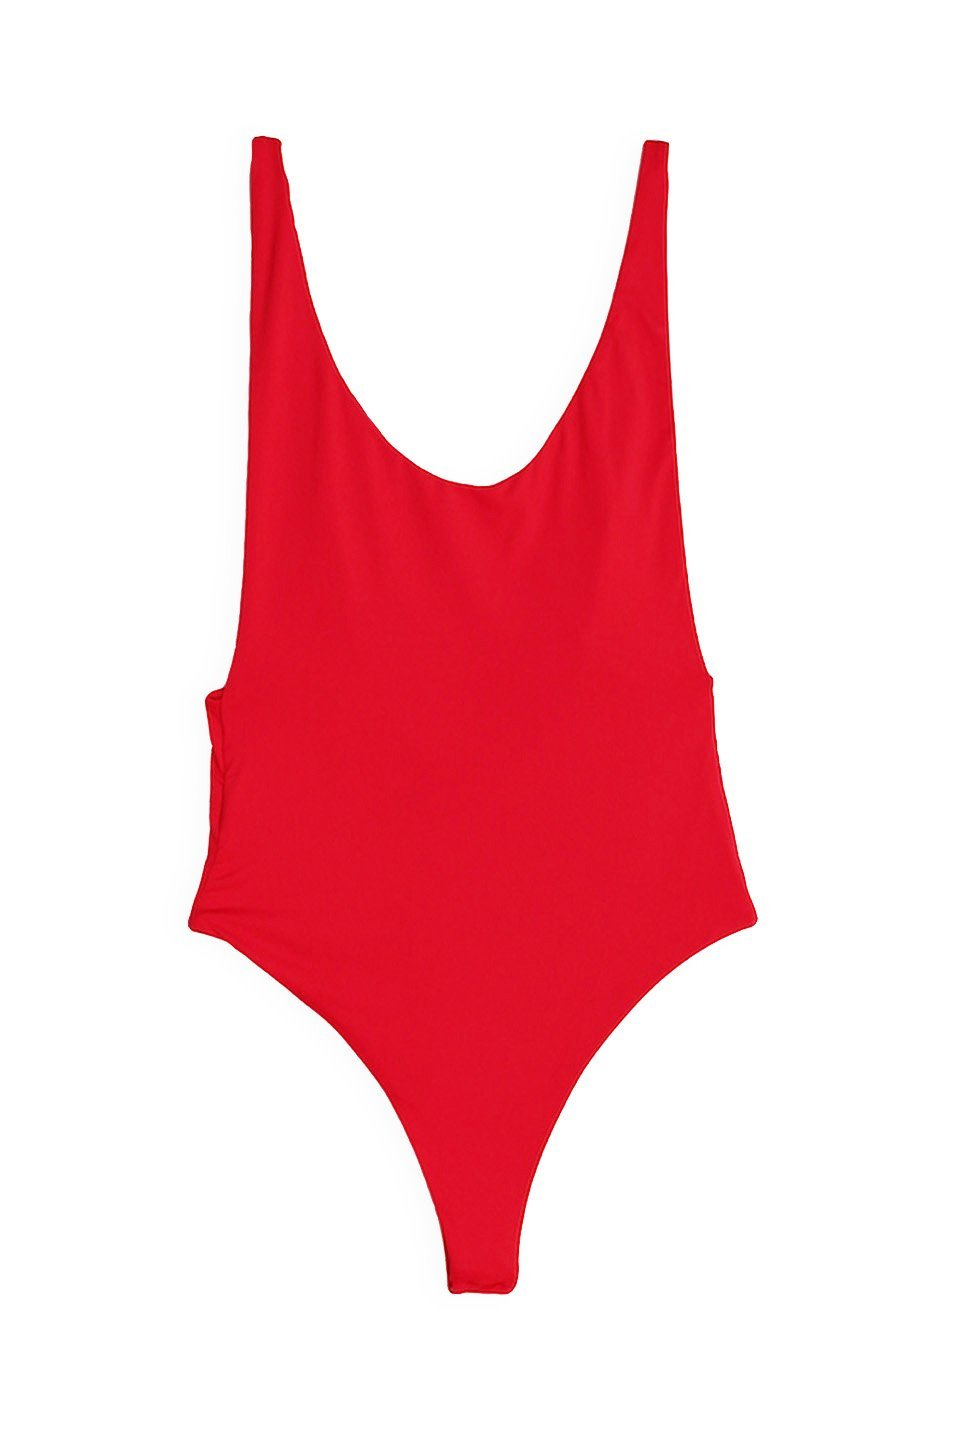 2fbce71a842a Dippin' Daisy's Low Back Thong One-Piece Swimsuit - Cherry - Dippin' Daisy's  Swimwear